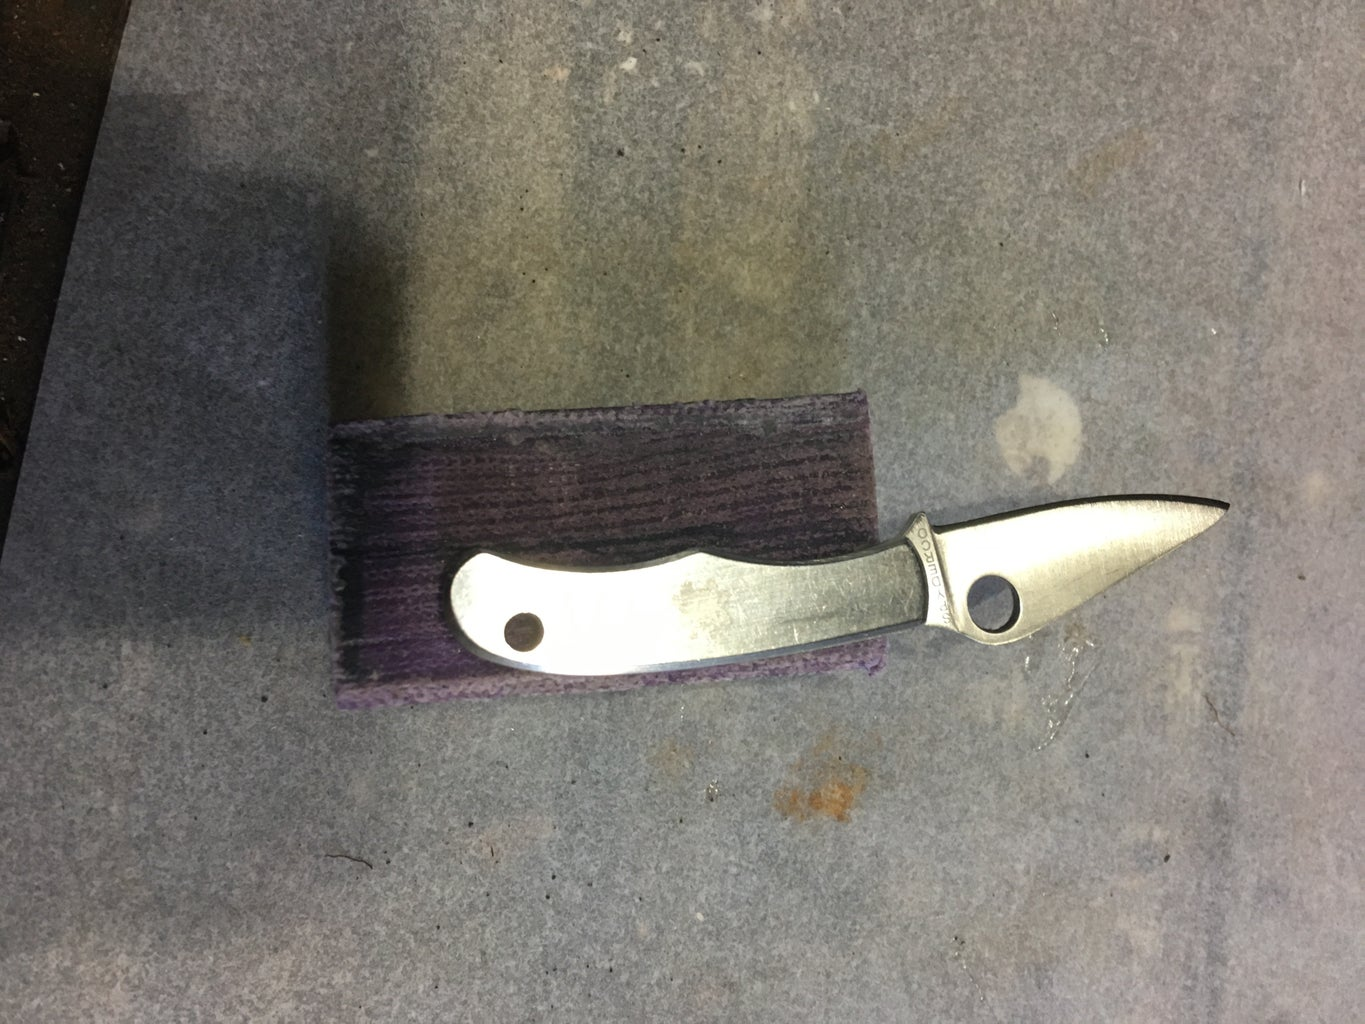 Problems Making the Micarta